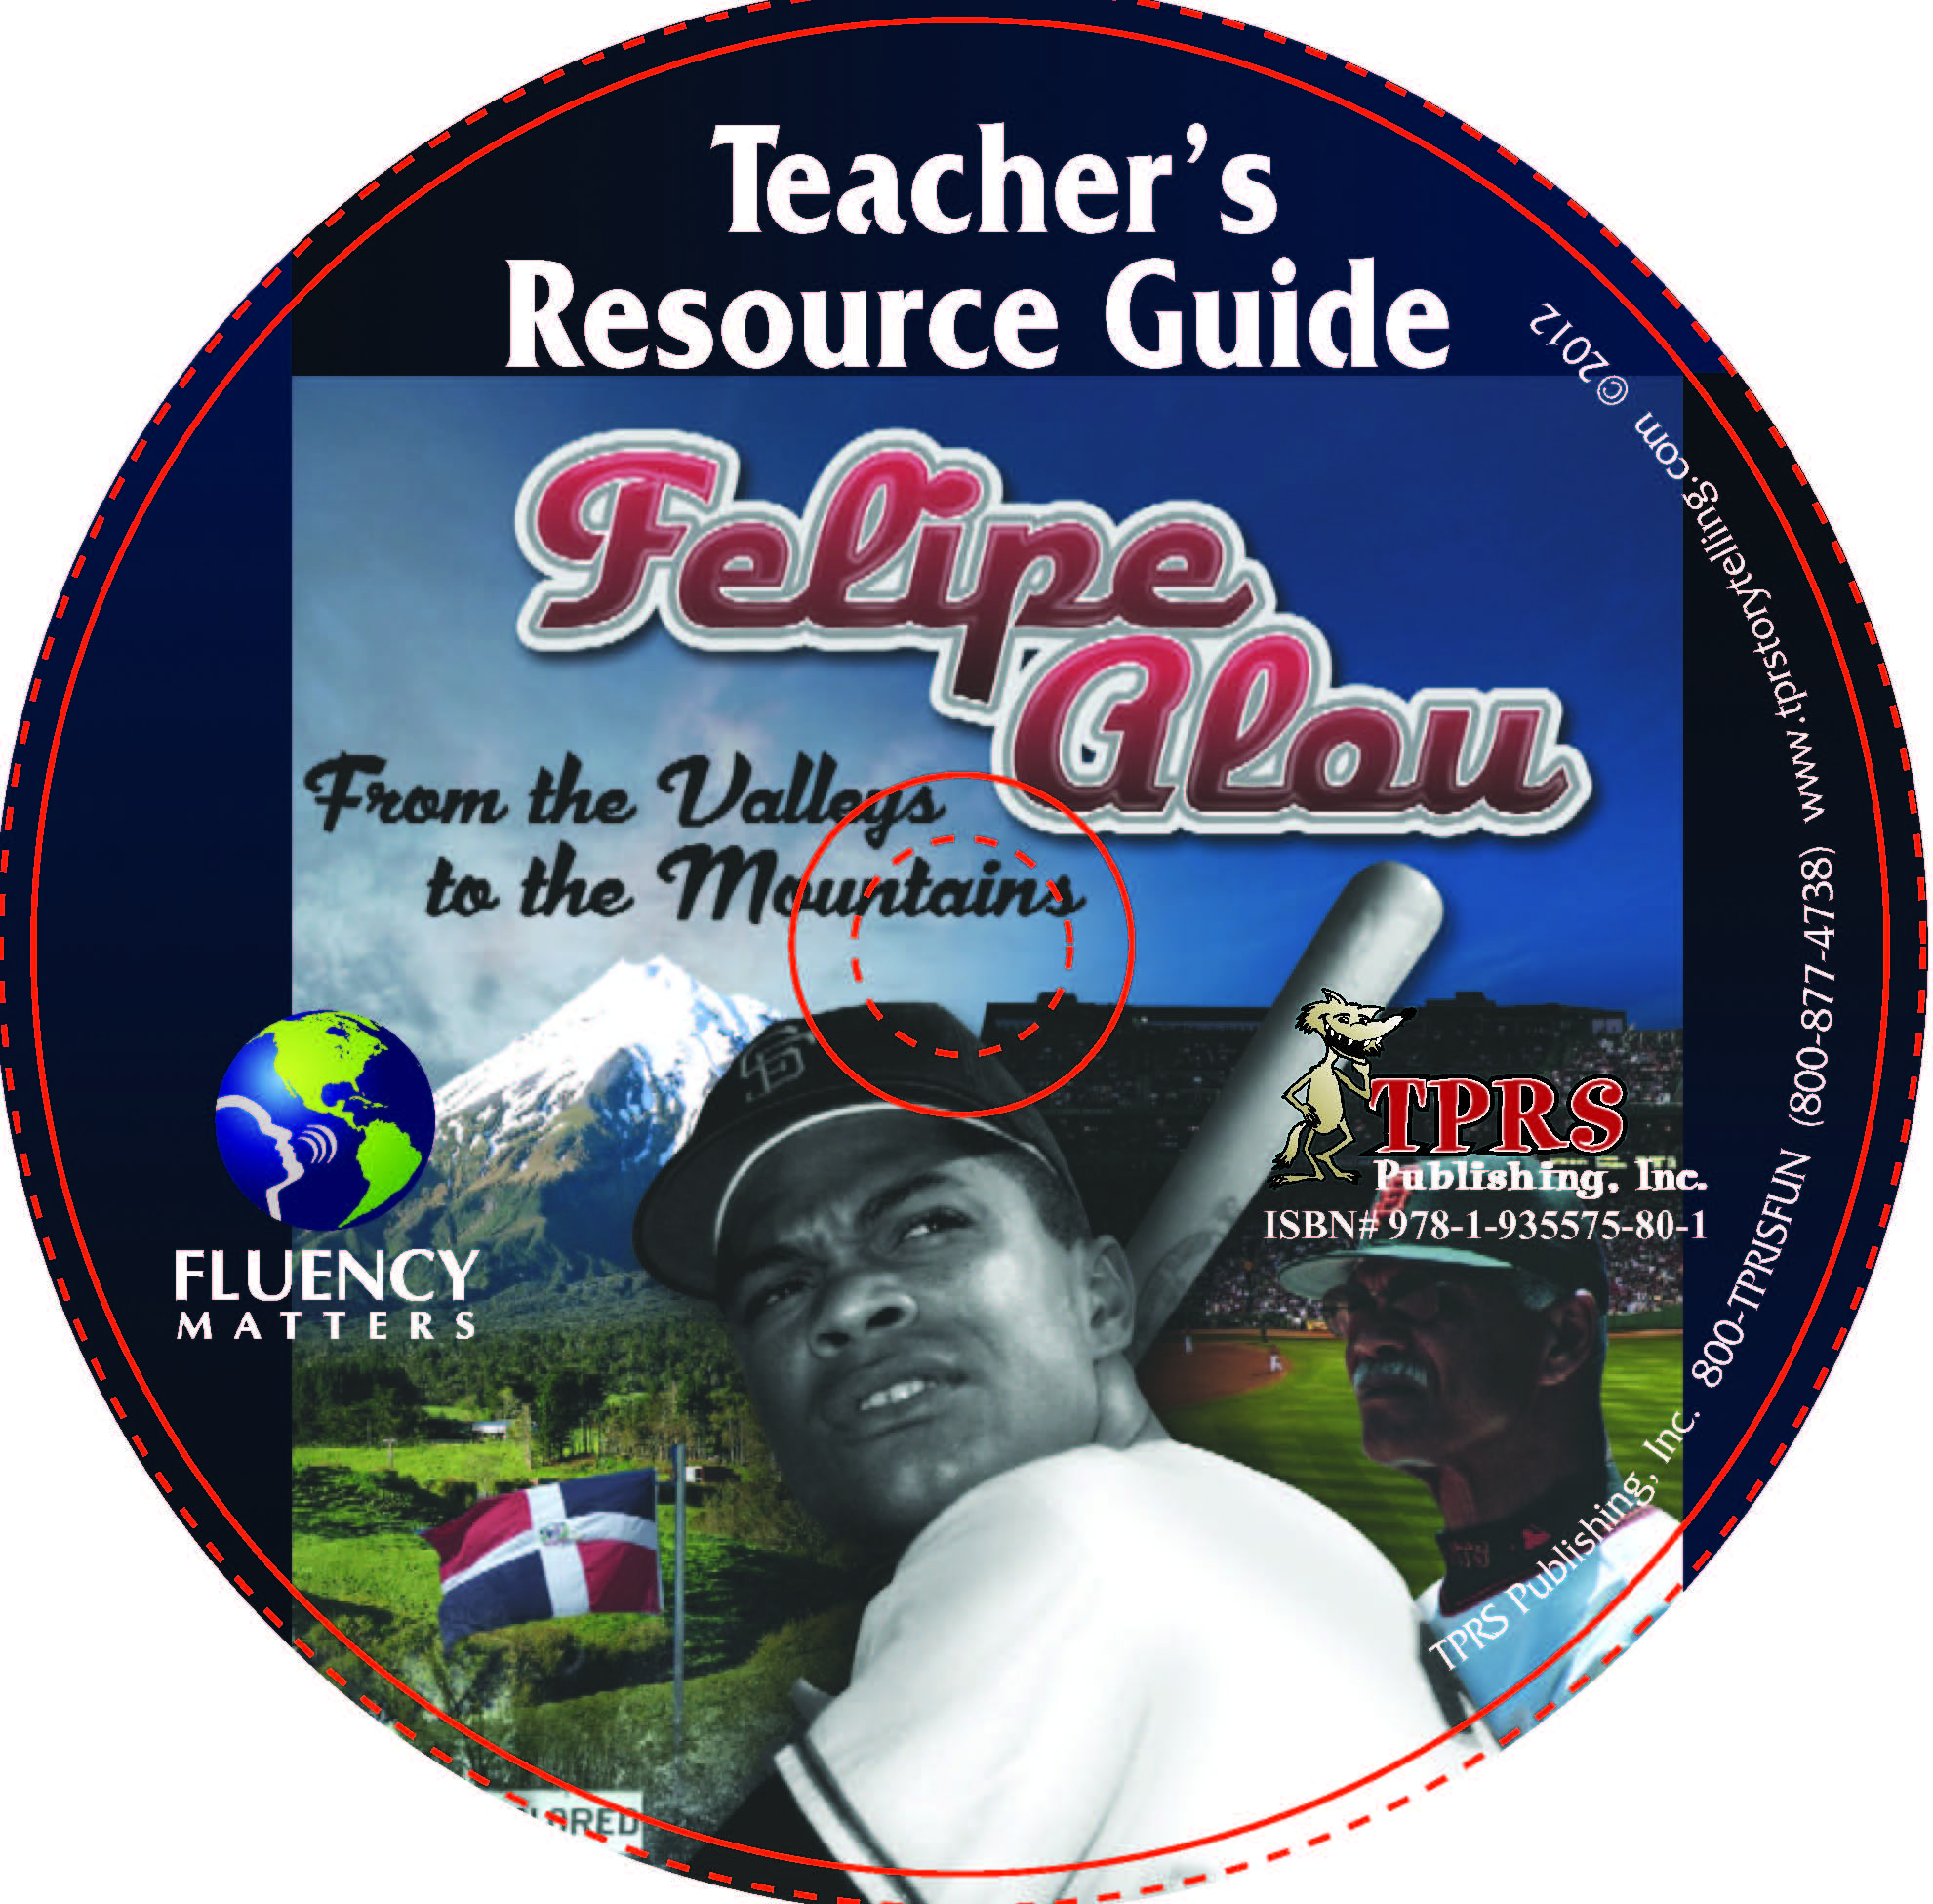 Felipe Alou: From the Valleys to the Mountains (English) –  Teacher's Guide on CD